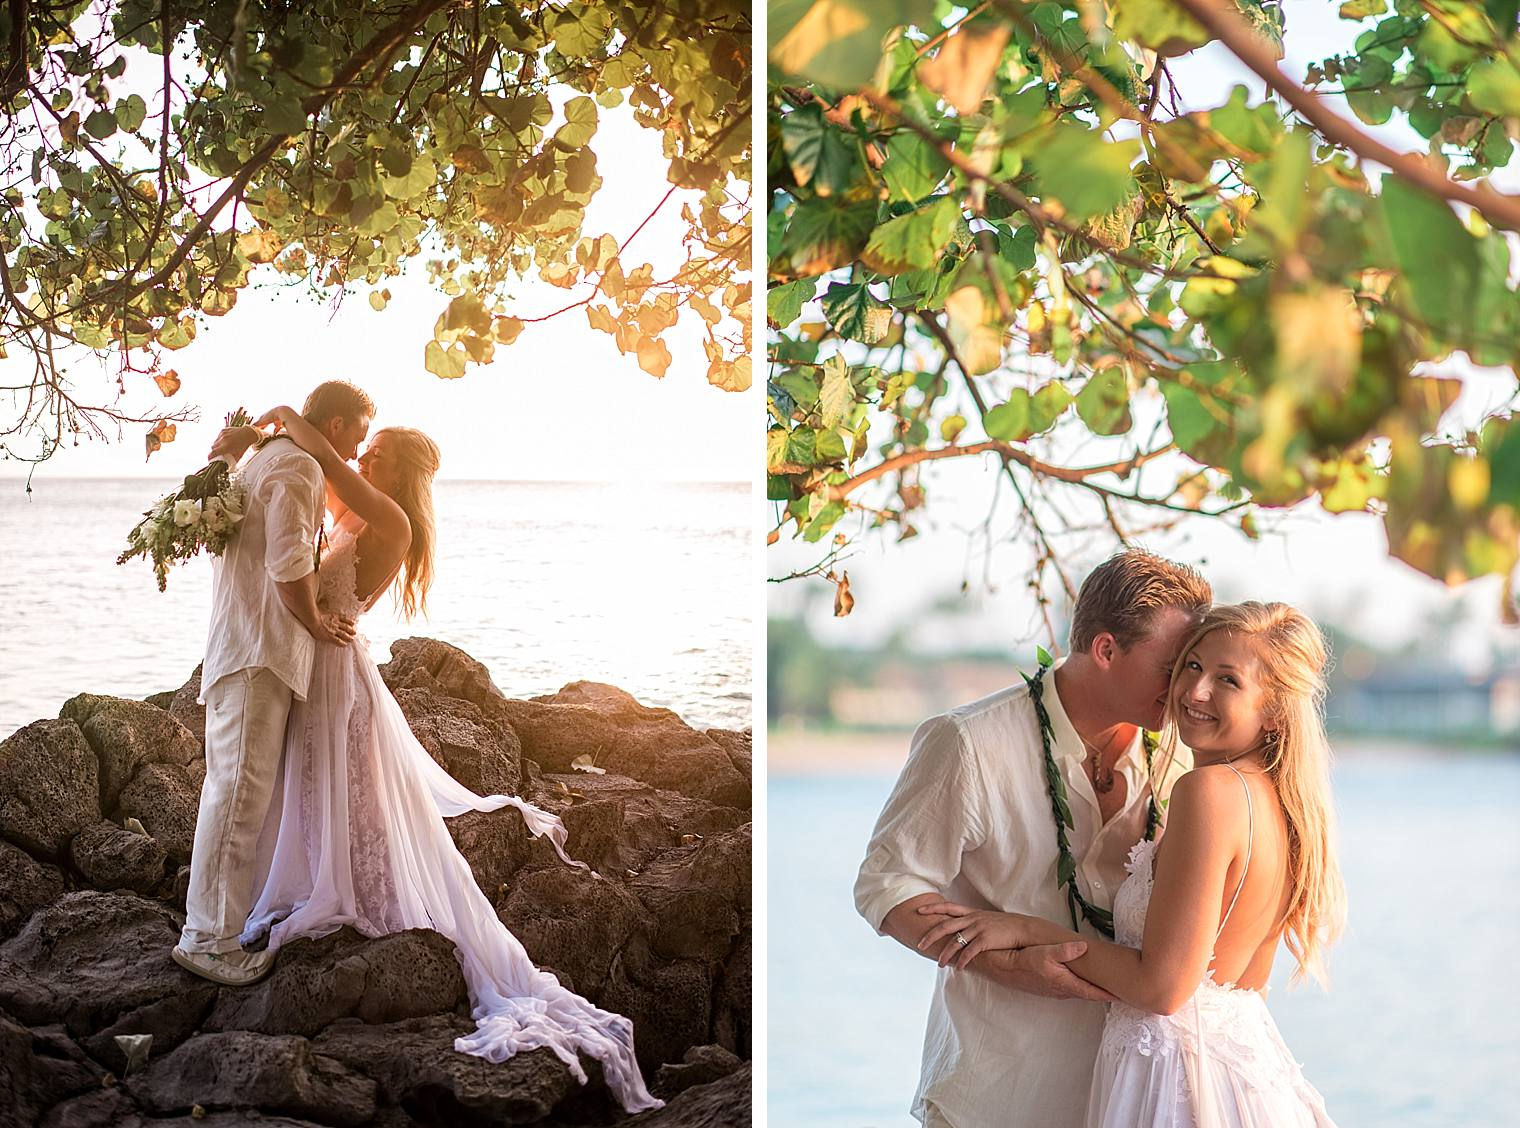 Destination Wedding at Sea House Napili - Maui Wedding Photographer_0033